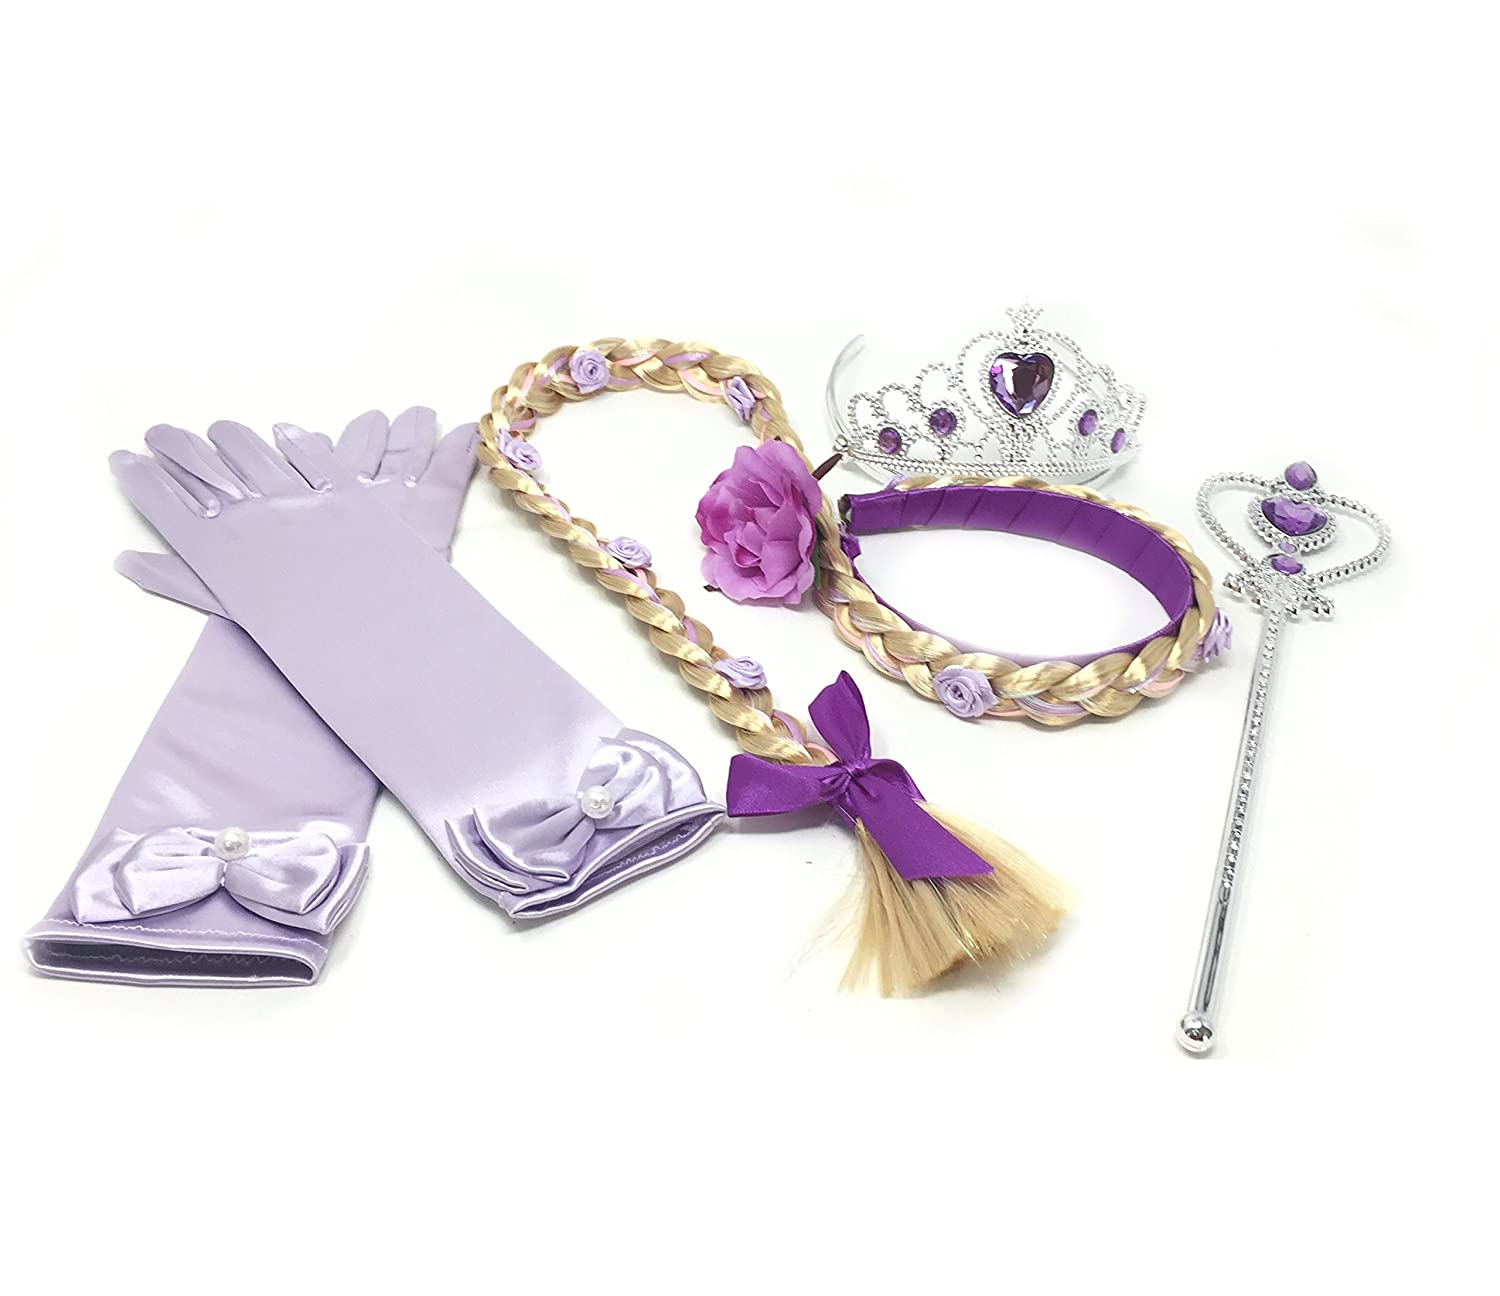 Princess Rapunzel Dress up Party 4-Piece Accessories Gift Set